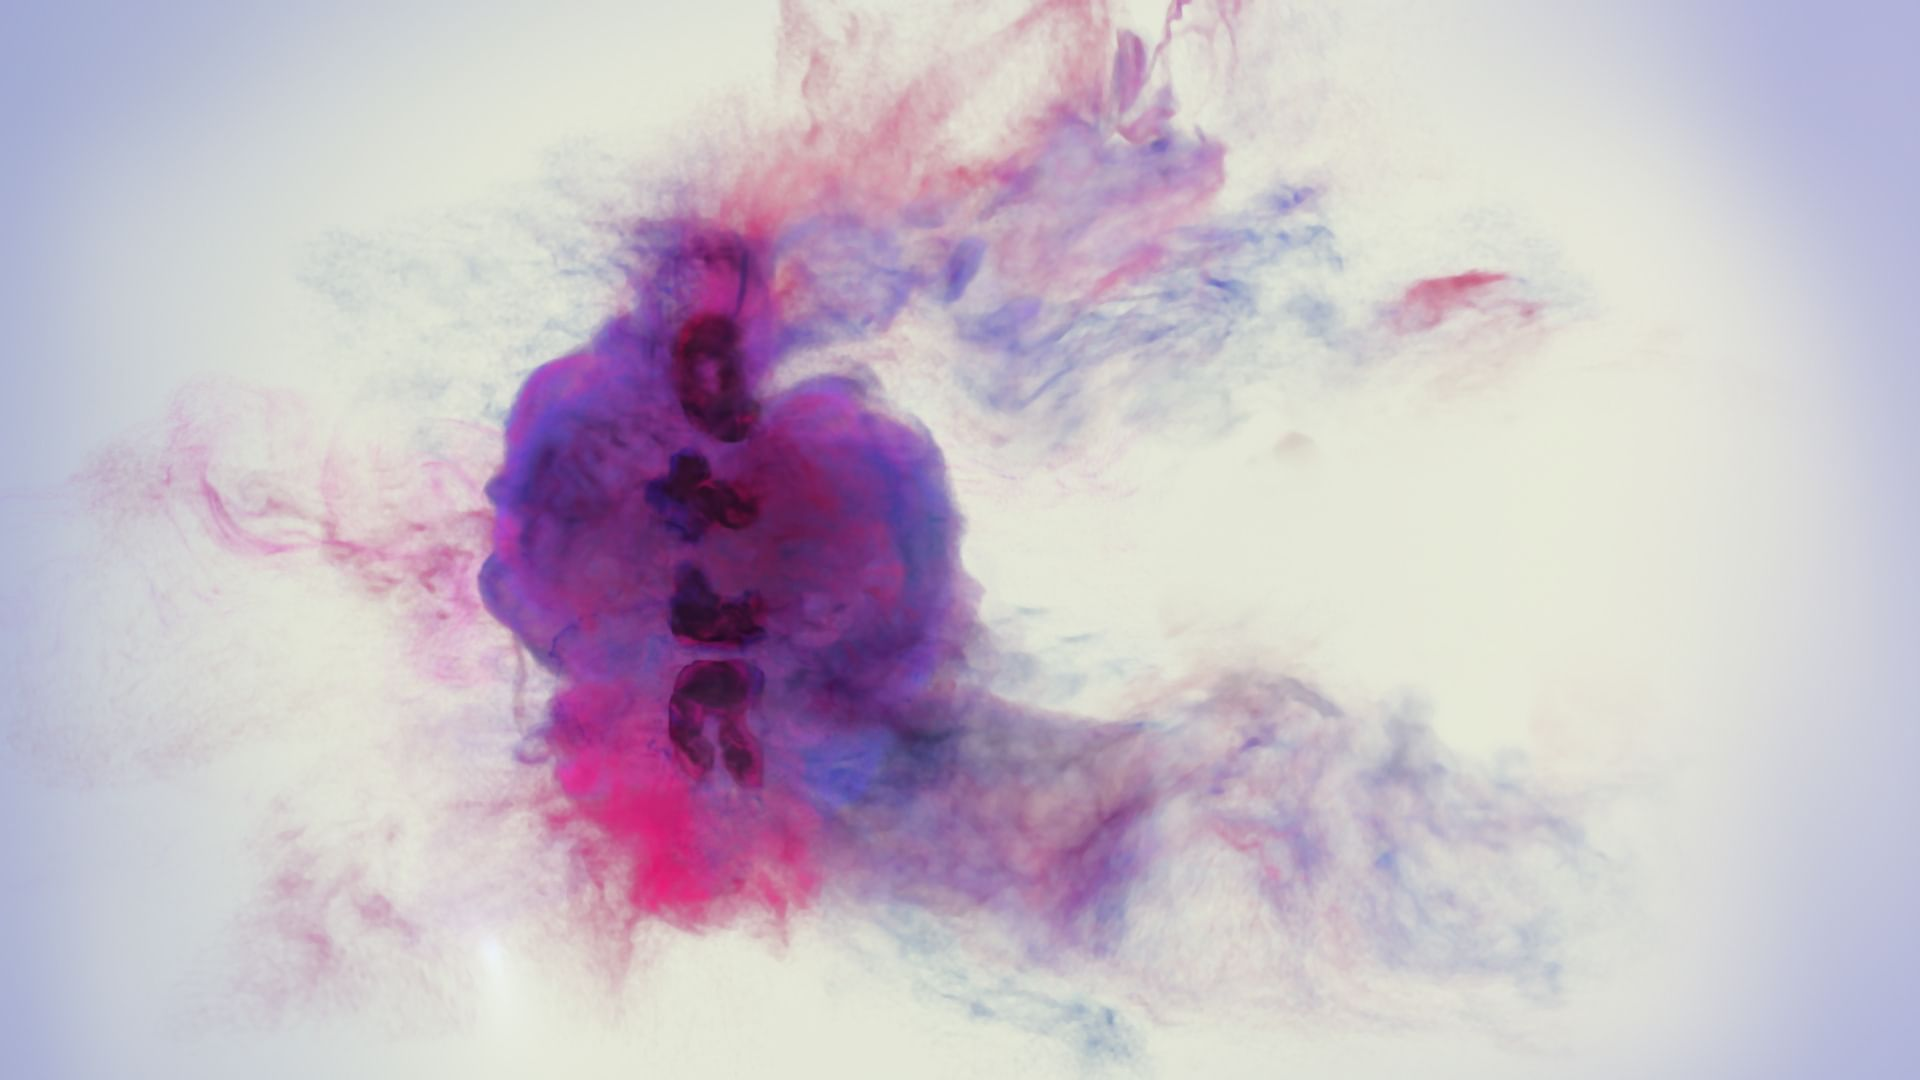 Tracks reports on geek culture, current music, film and emerging artistic forms